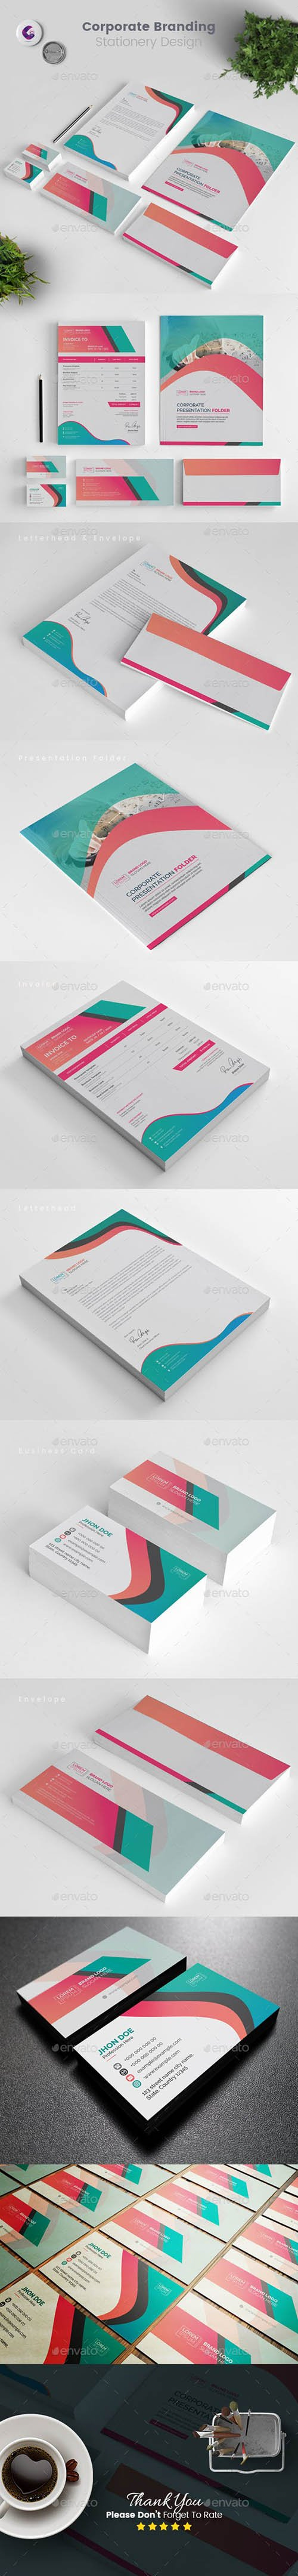 GraphicRiver - Corporate Stationery 22967783